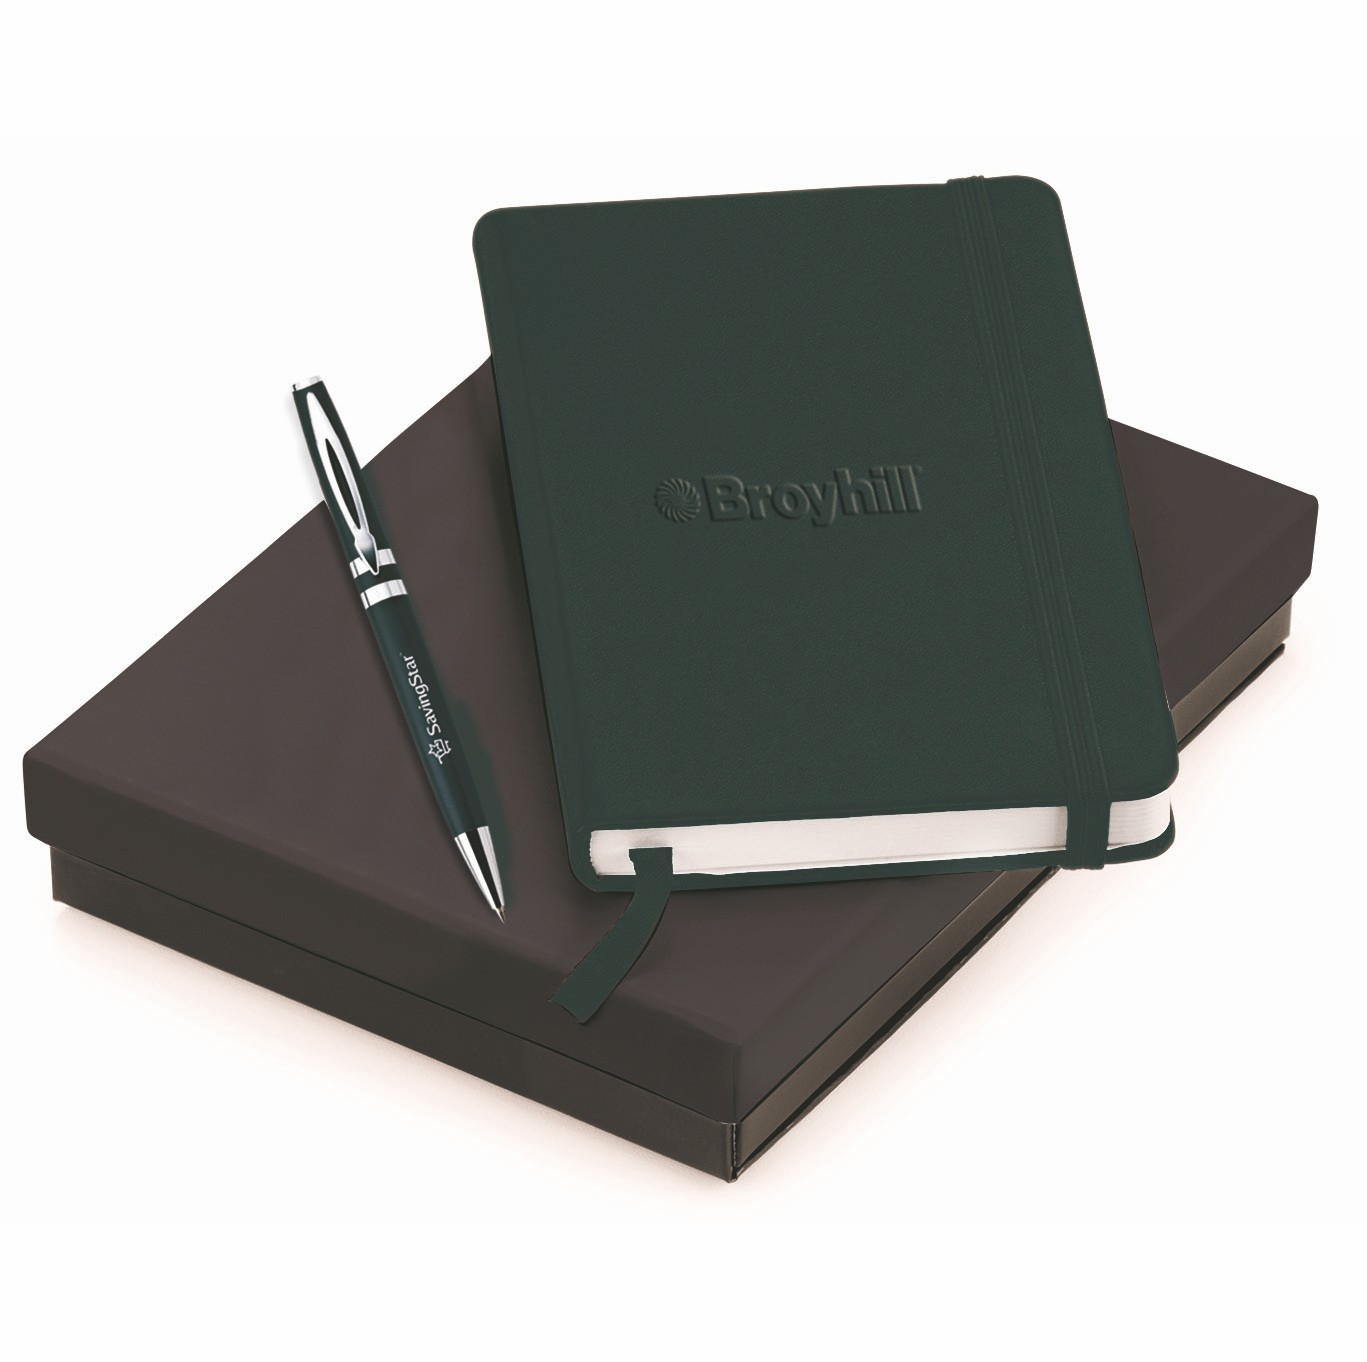 TEMPEST & NEOSKIN; PEN & JOURNAL GIFT SET, G6849, Debossed Logo